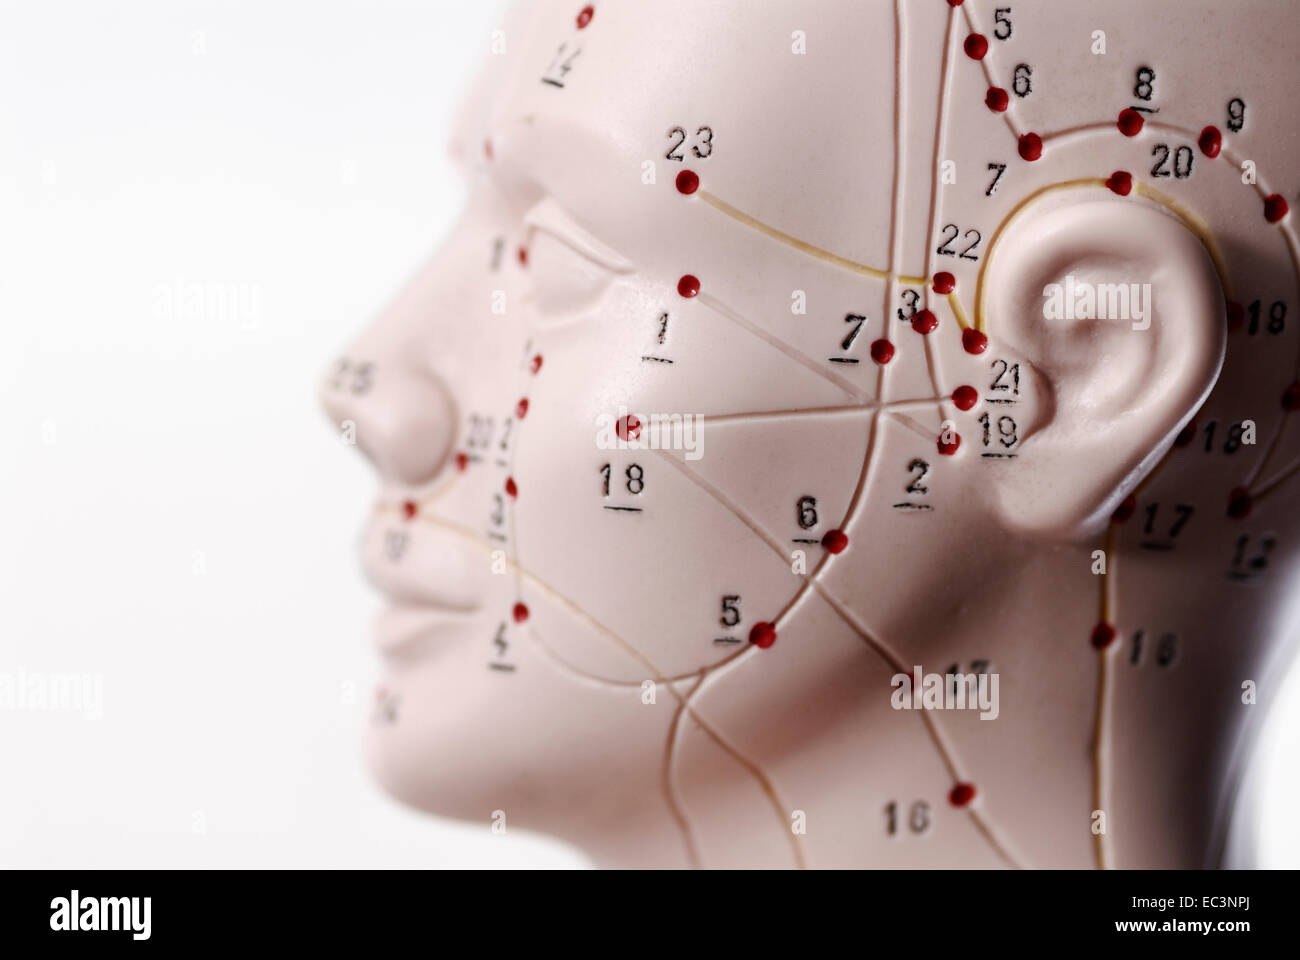 Acupuncture Points Stock Photos & Acupuncture Points Stock Images